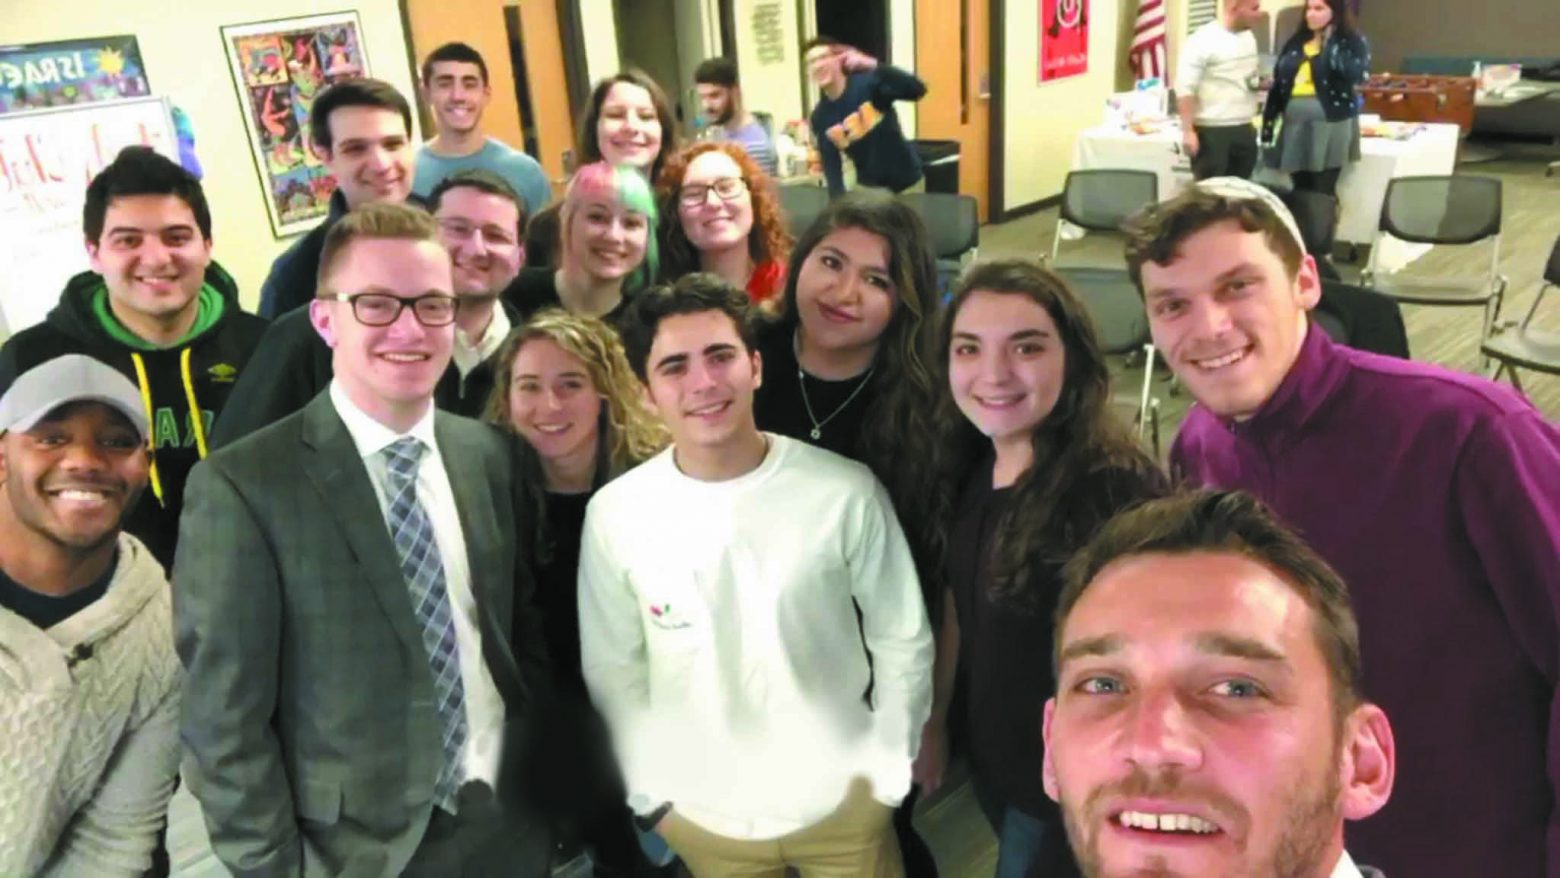 Israeli popular TV actor Dean Miroshnikov takes a selfie with WSU SFI students.